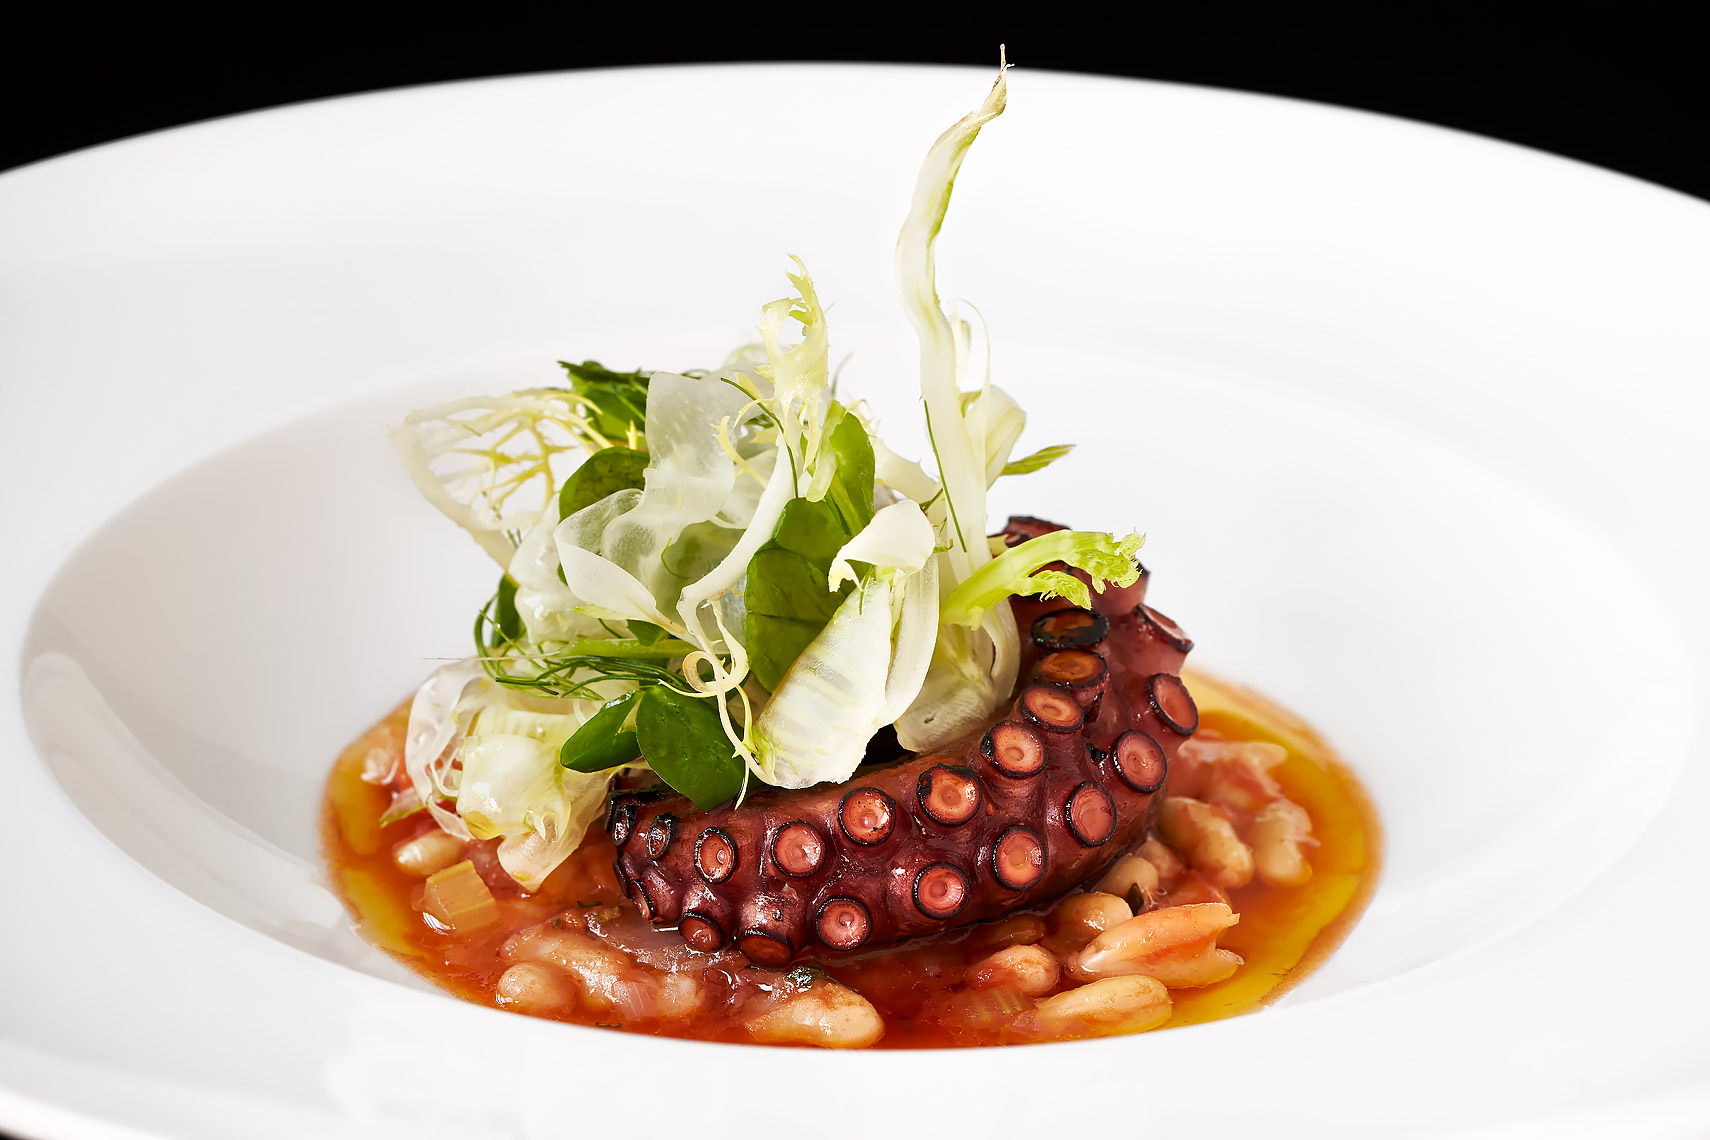 FOOD-DiningOut37-Capella-Grill-Room-Octopus